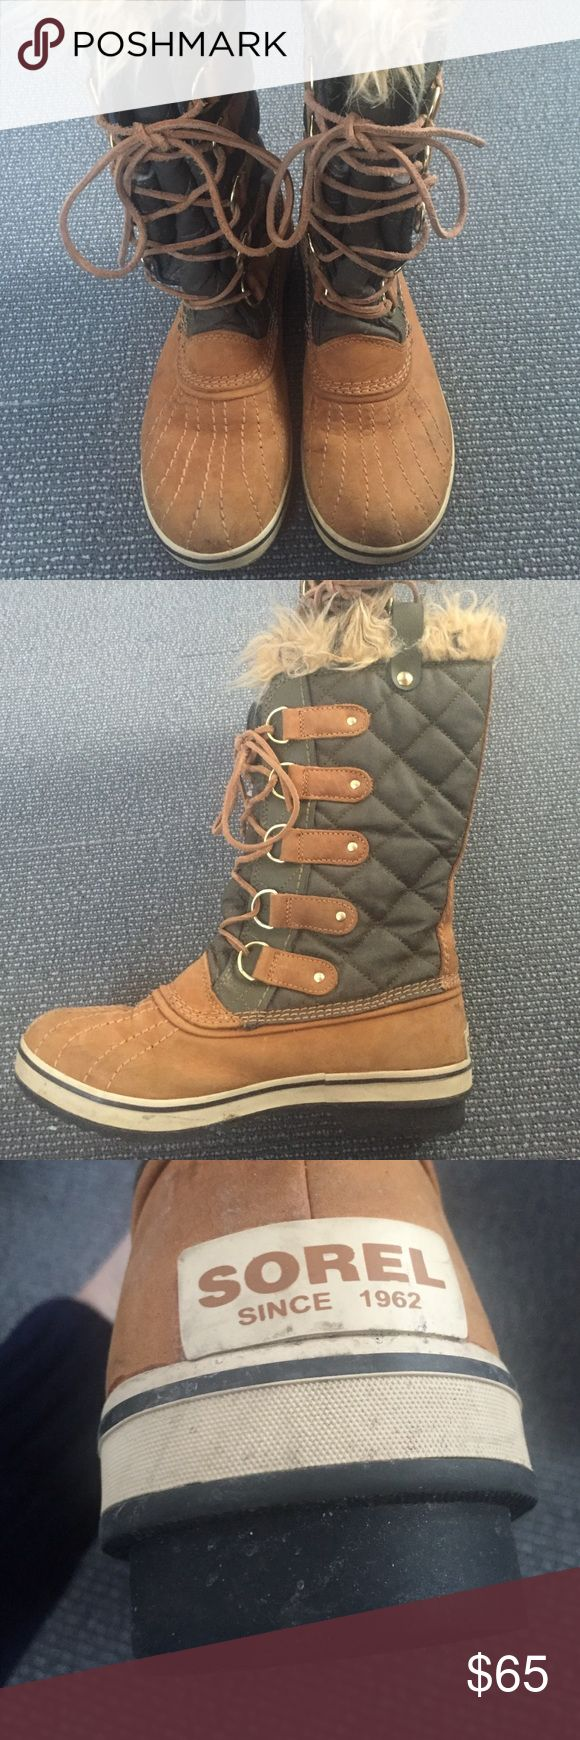 Sorel women's Joan of arc boots These gorgeous authentic Sorel Joan of arc boots are lightly worn. This pair is a combination of light brown suede effect uppers & trim, leather laces & dark green quilting with light brown fur trim. Sorel Shoes Winter & Rain Boots